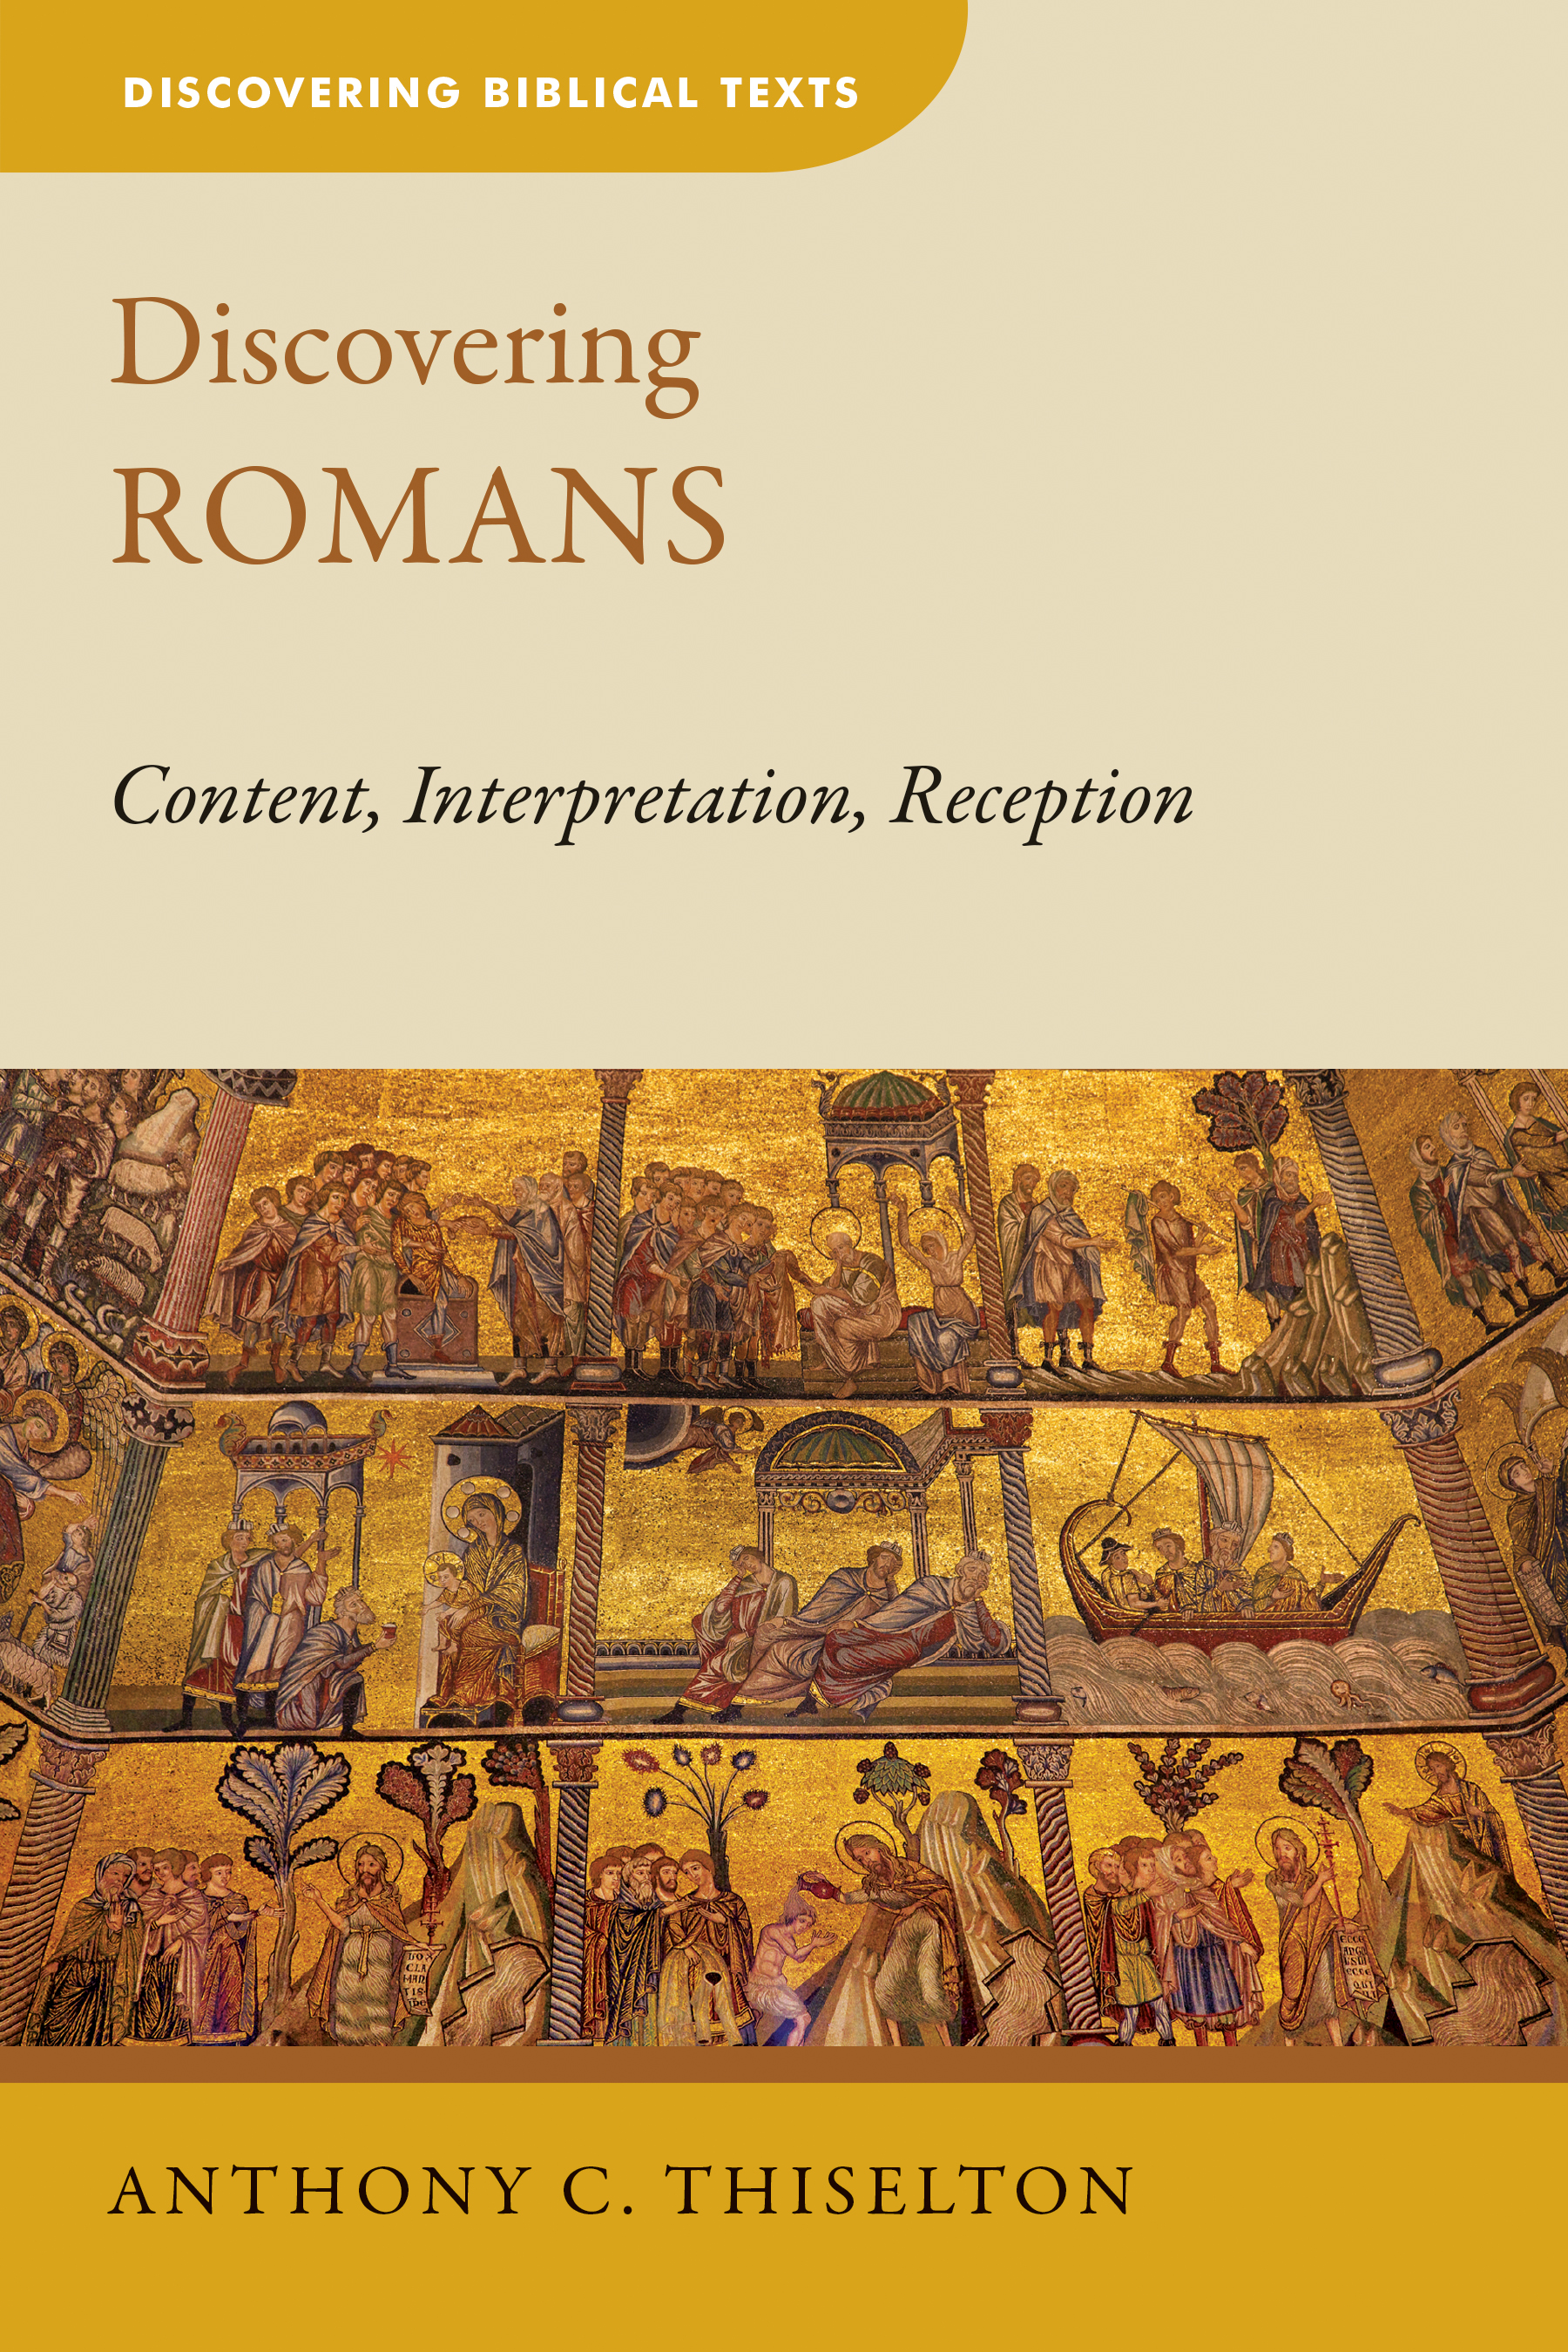 Book Review Anthony Thiselton Discovering Romans